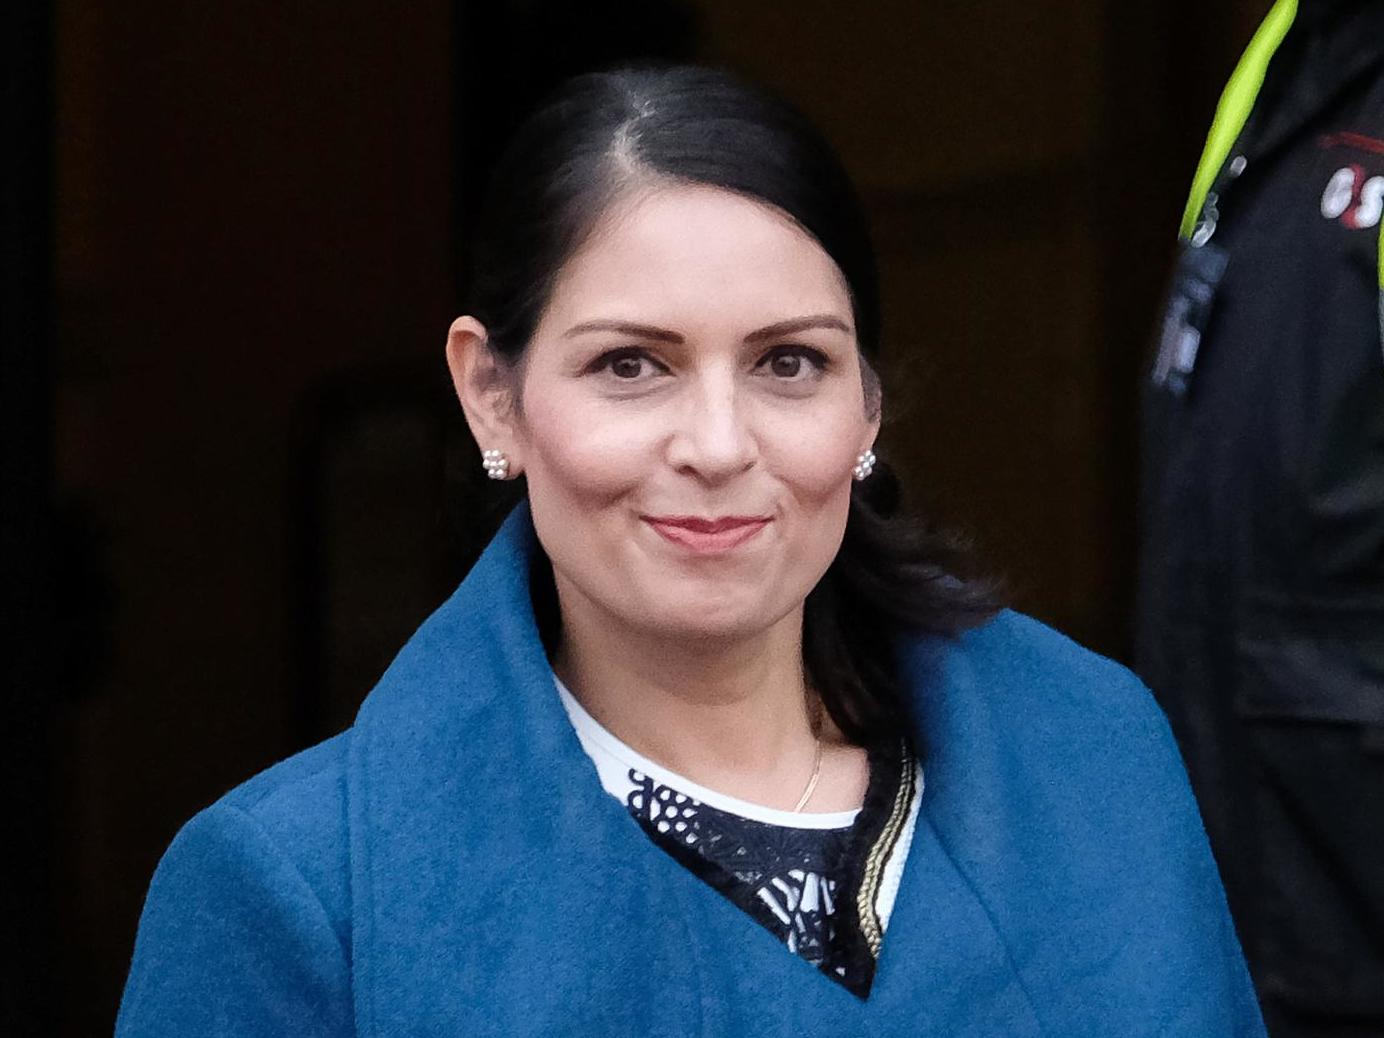 Brexit: Business leaders call on Priti Patel to lower minimum wage for migrant workers